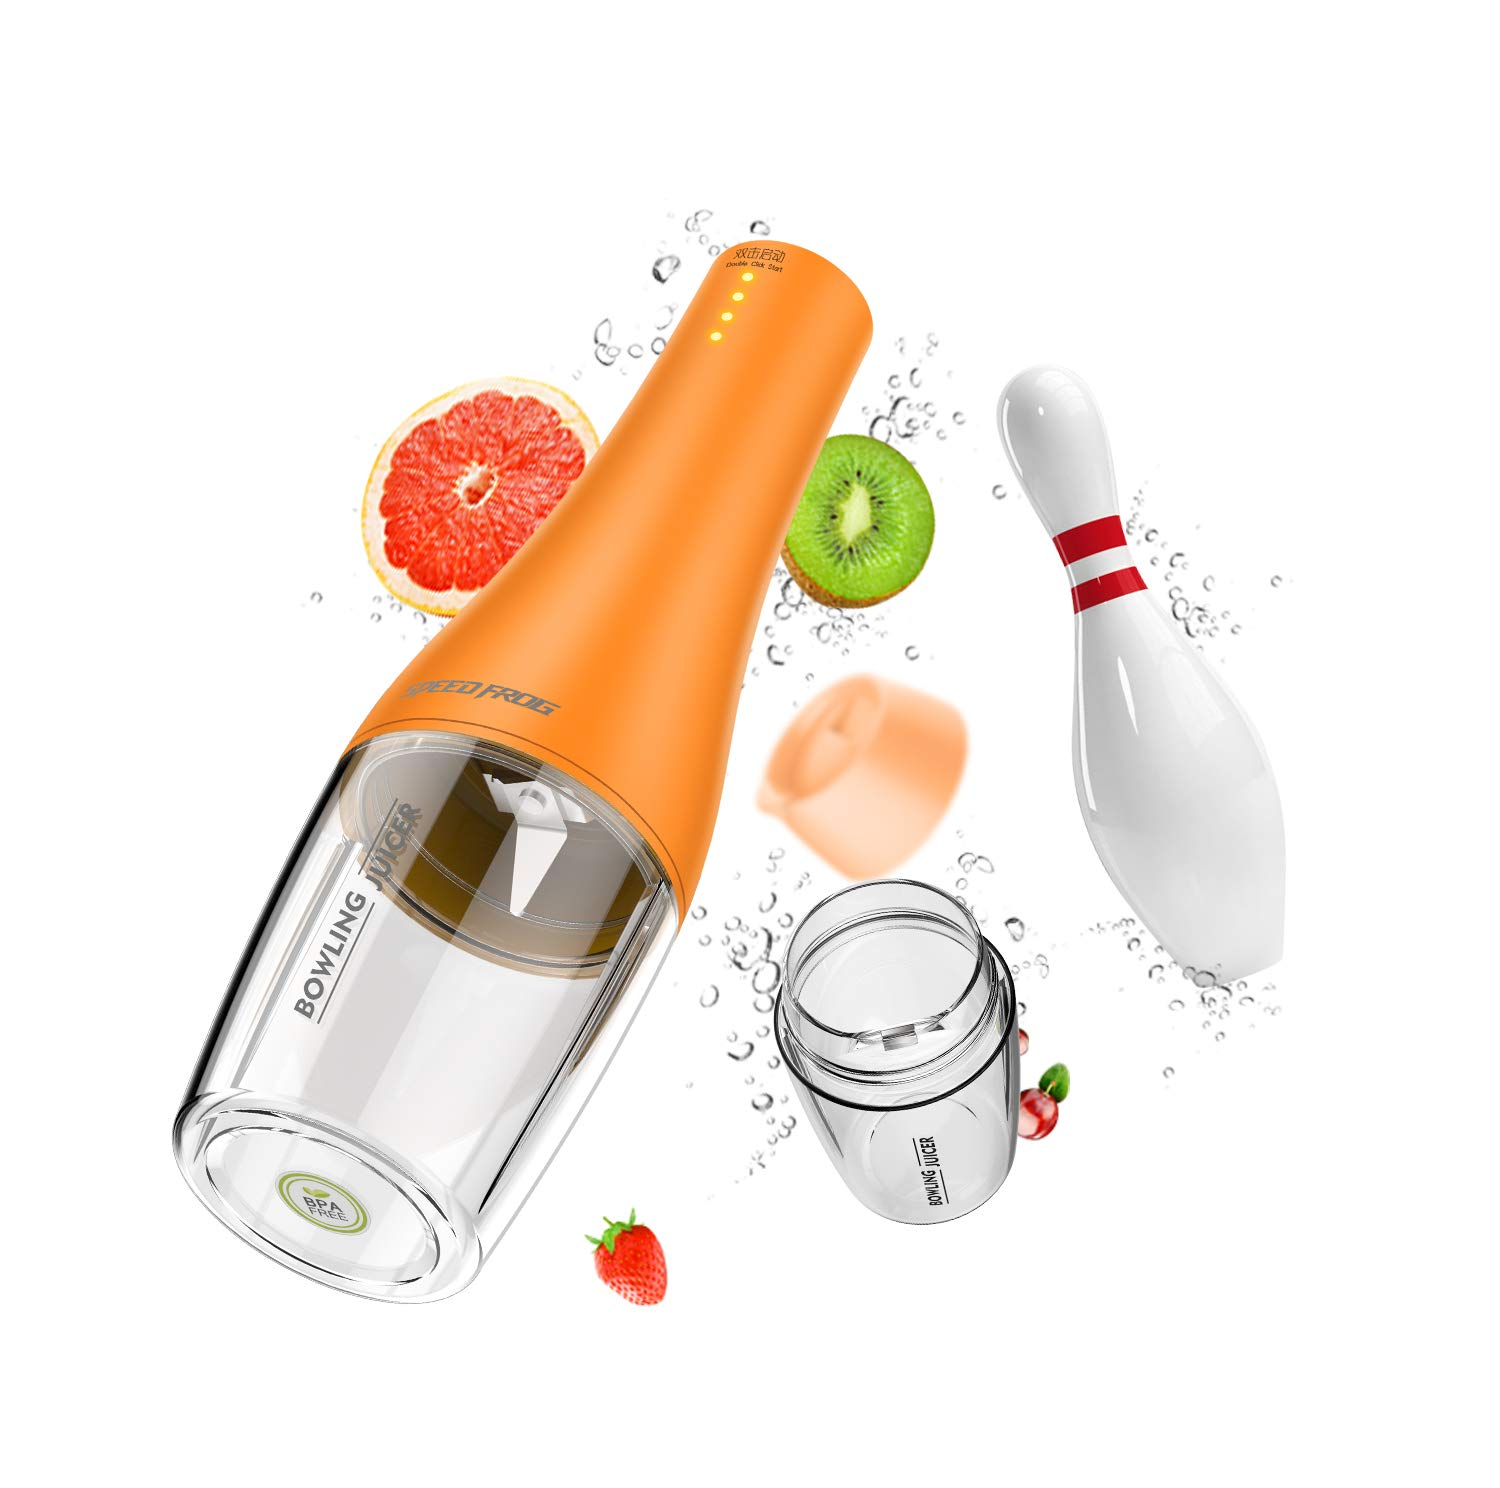 Portable Juicer, 350ml Juicer Blender With 4-Blade, Fruit Juice mixer for Home, Outdoors and Travelling, orange